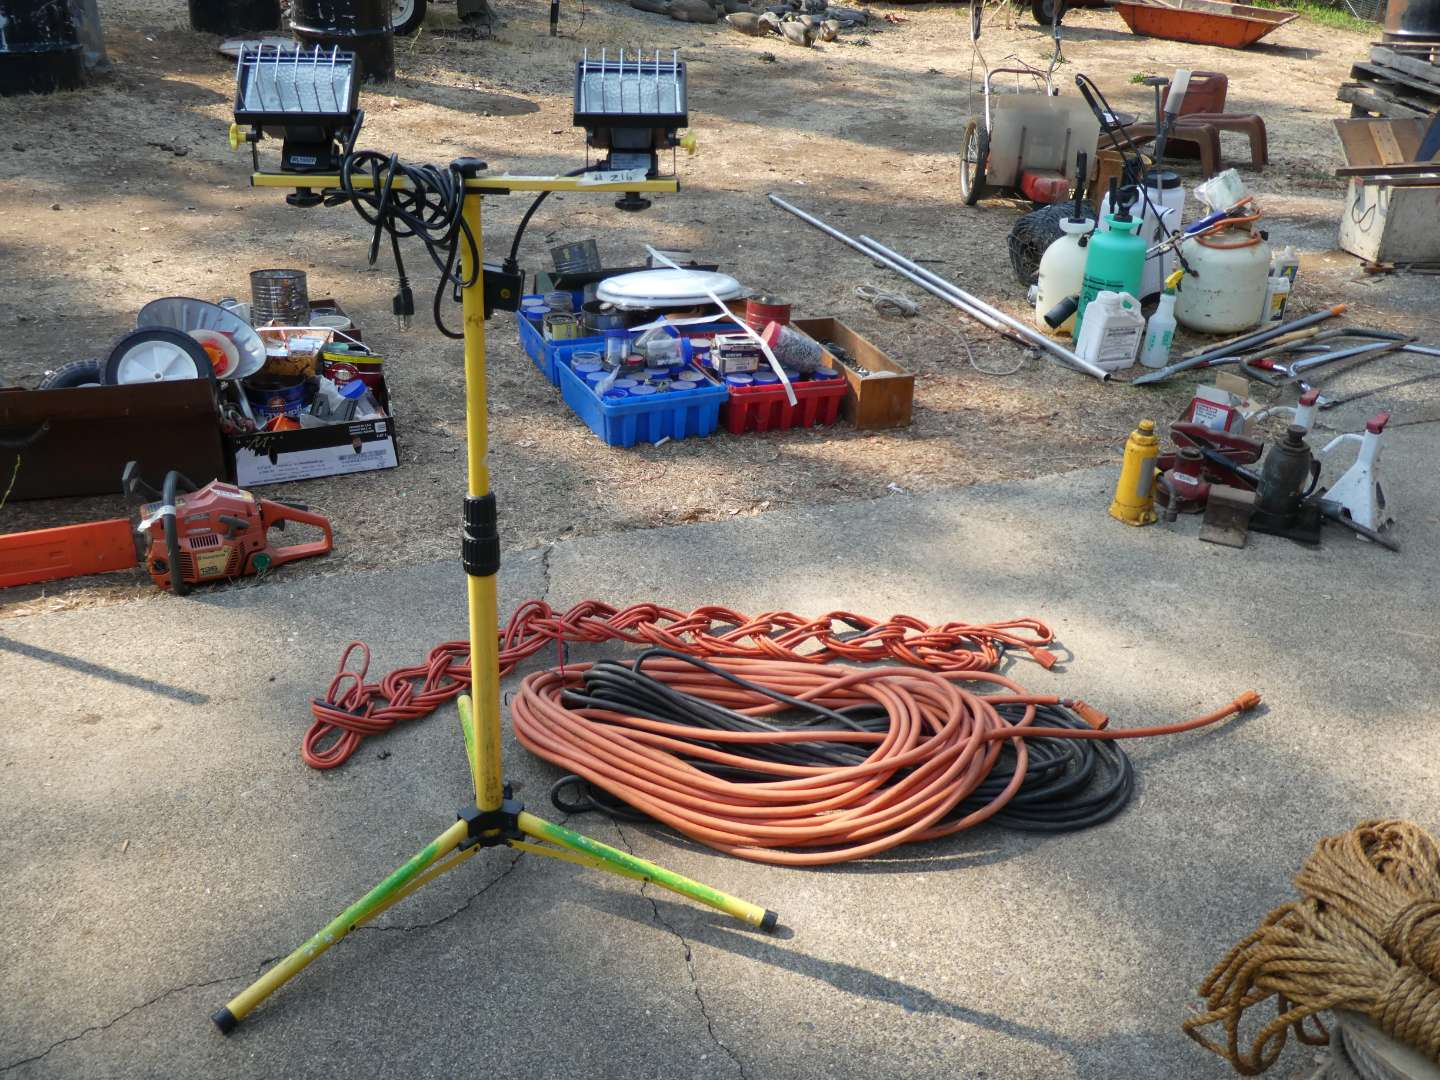 Lot # 216 - Dual Head Flood Light With Stand & Three Extension Cords (main image)